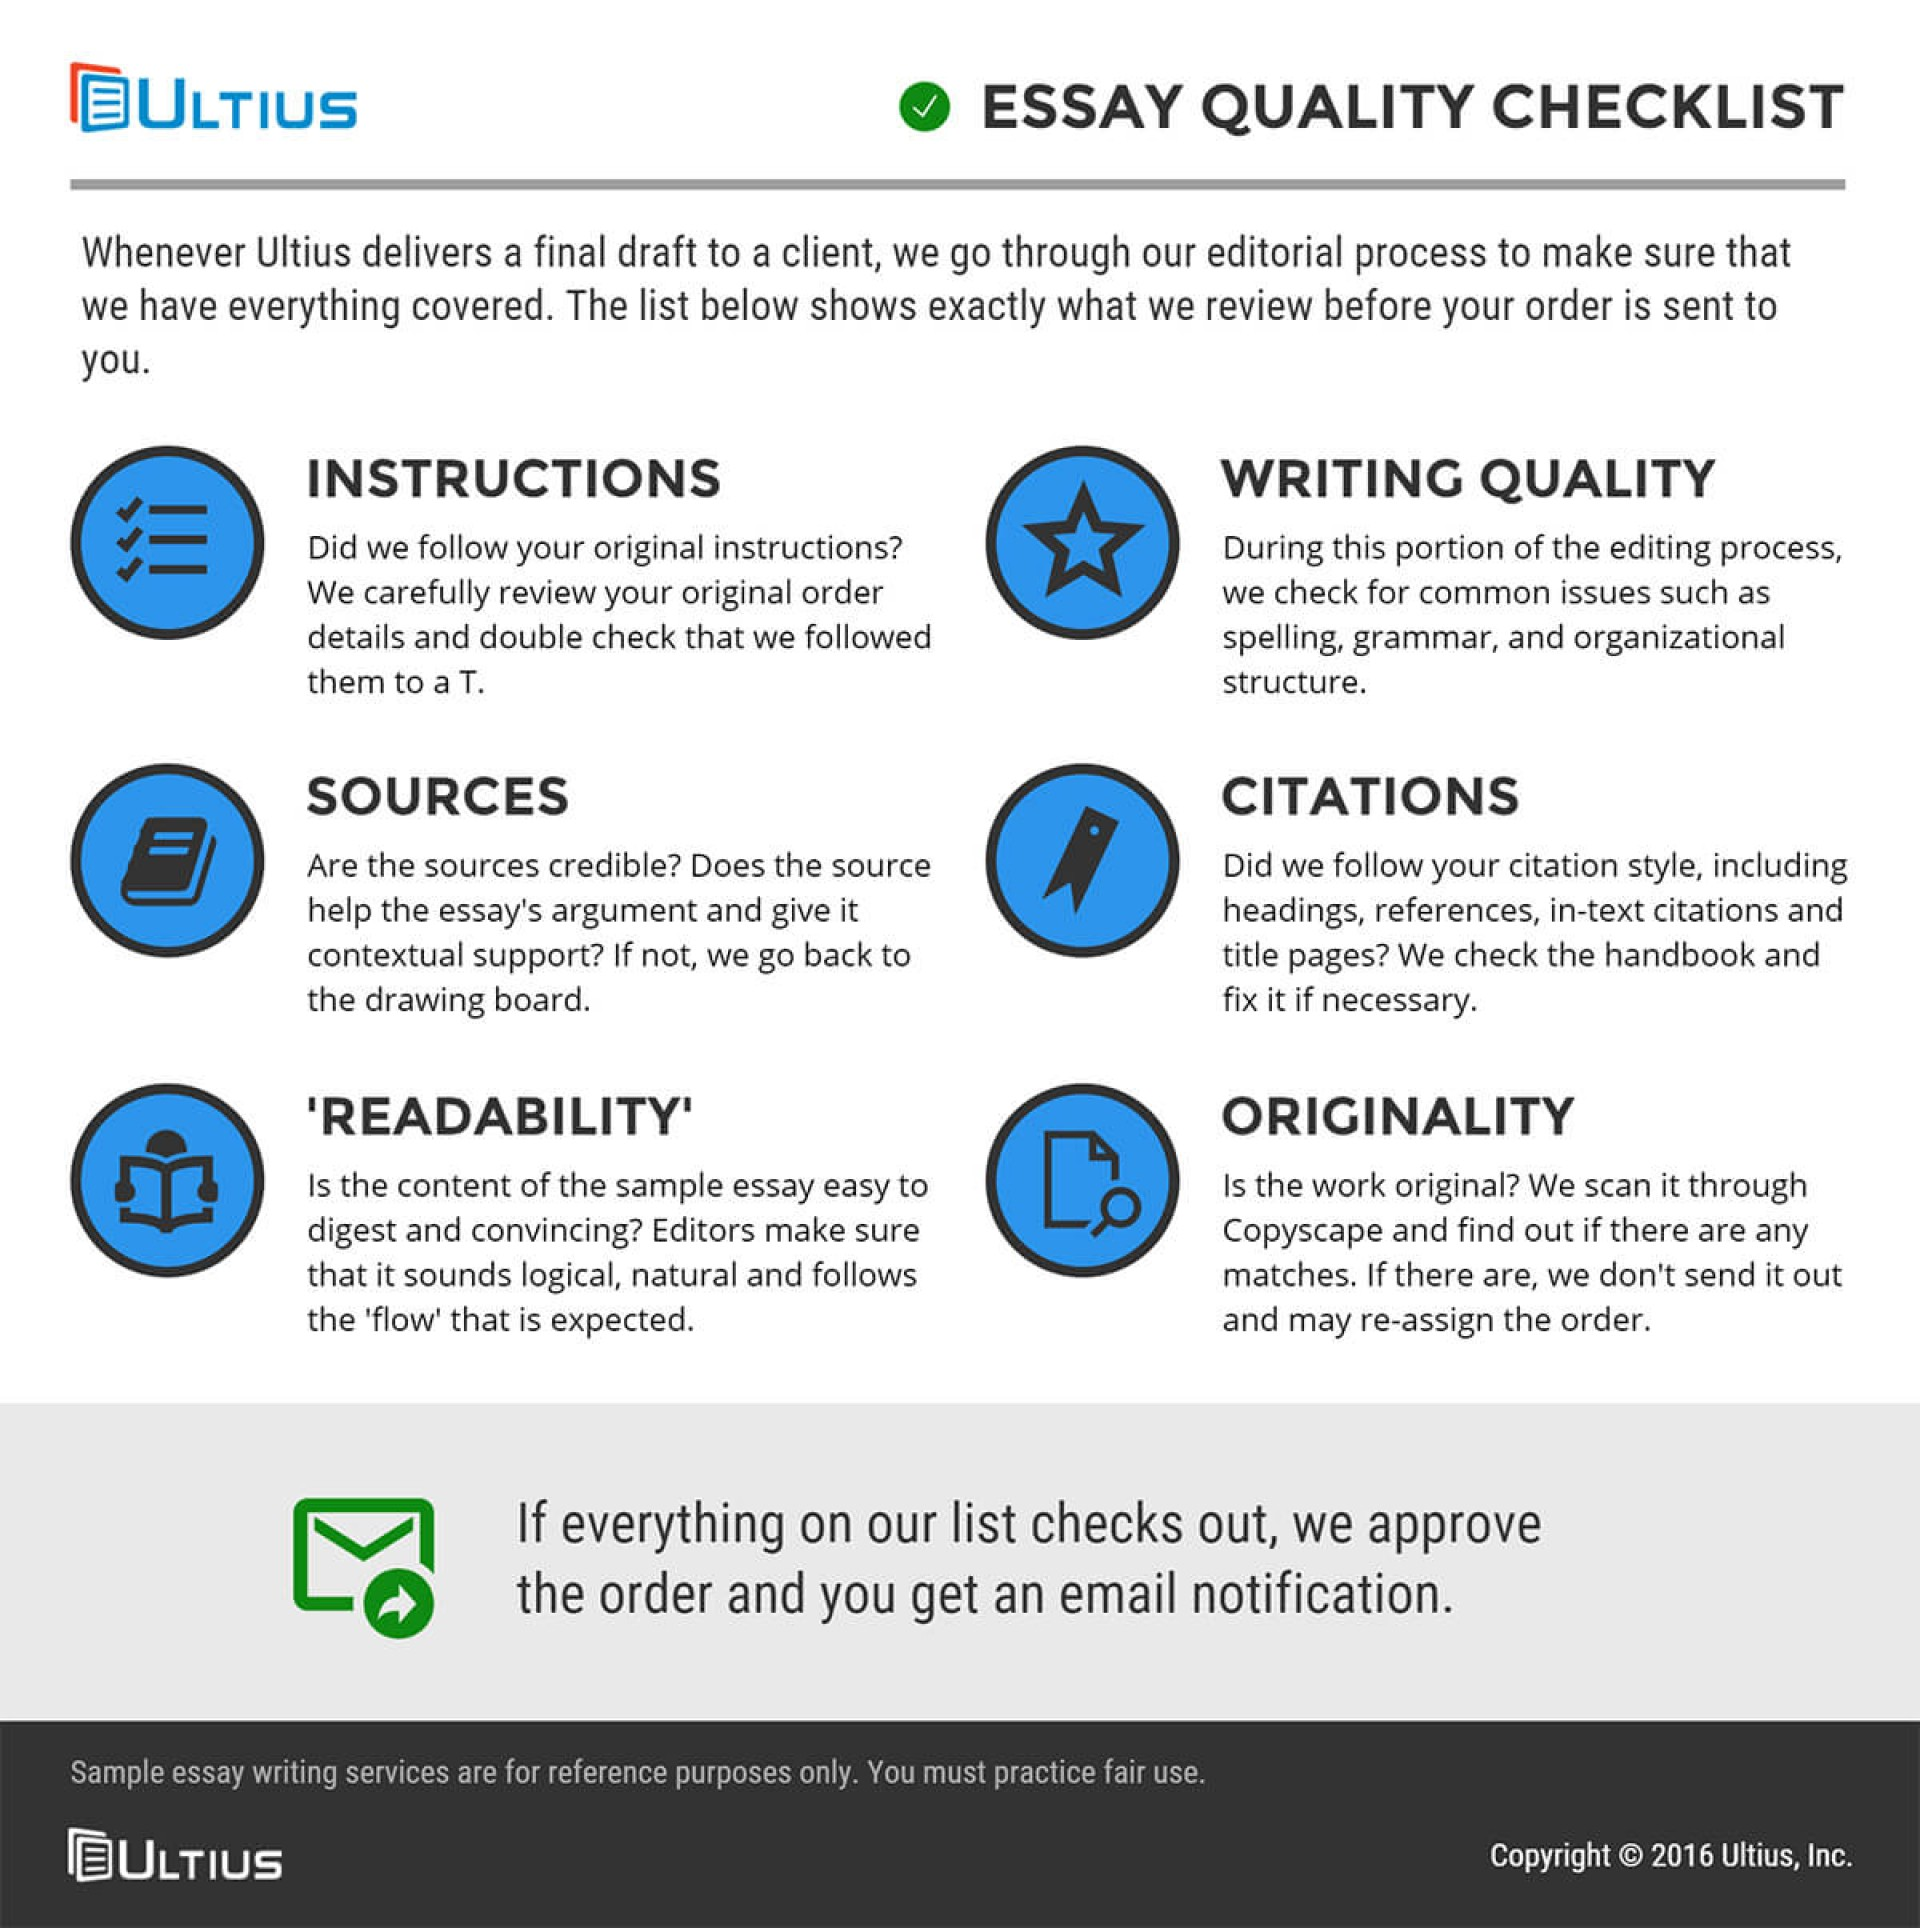 020 Essay Example Quality Checklist Buy Singular Review Just Reviews Friend 1920